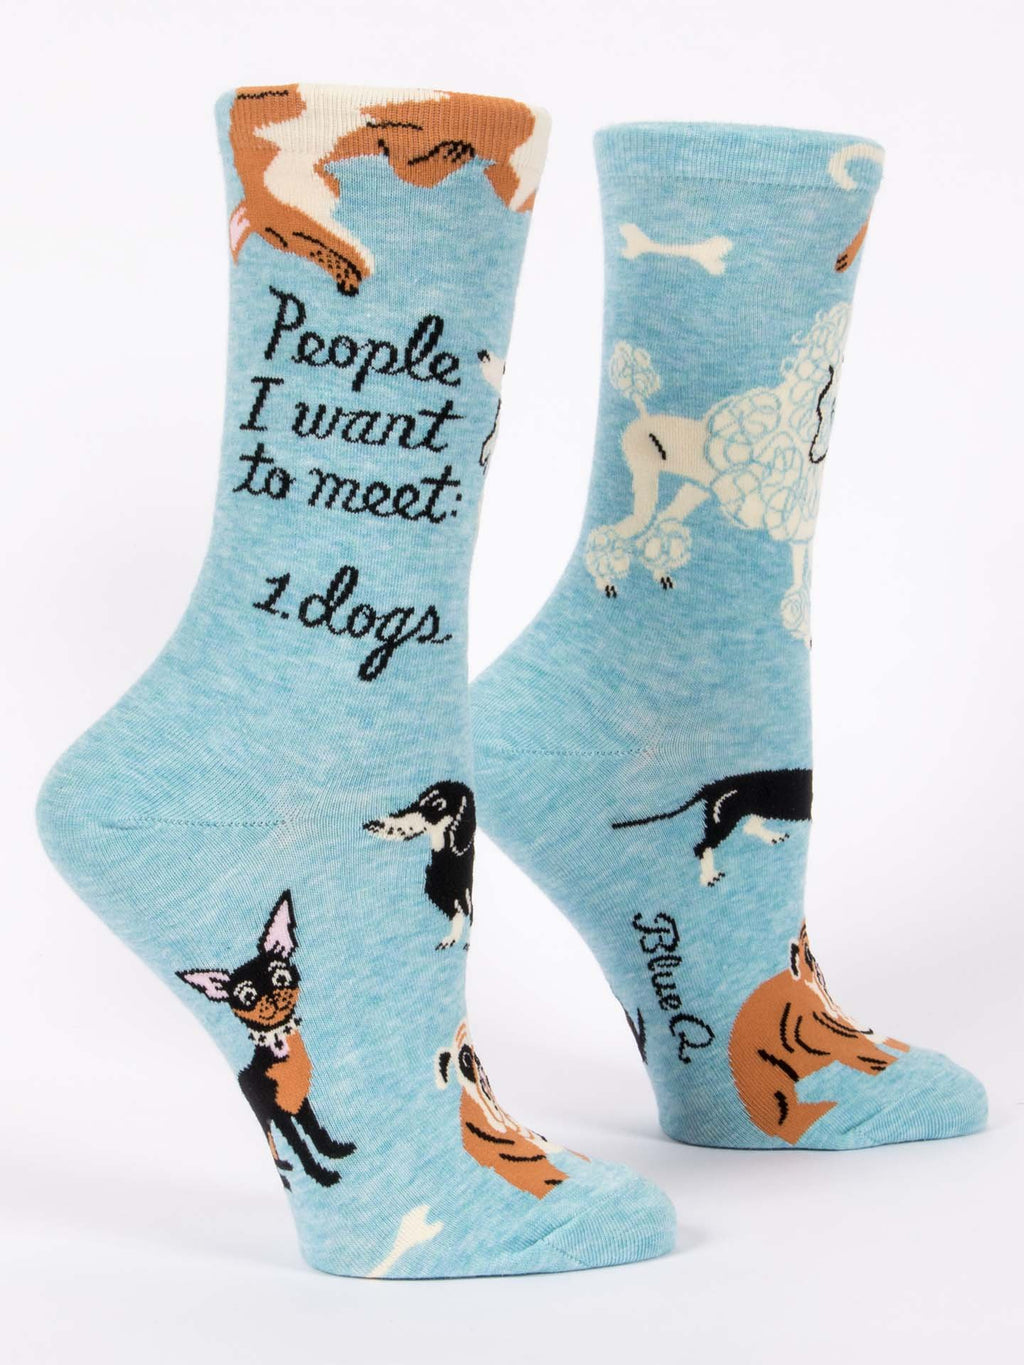 blue q women's socks People I want to meet dogs